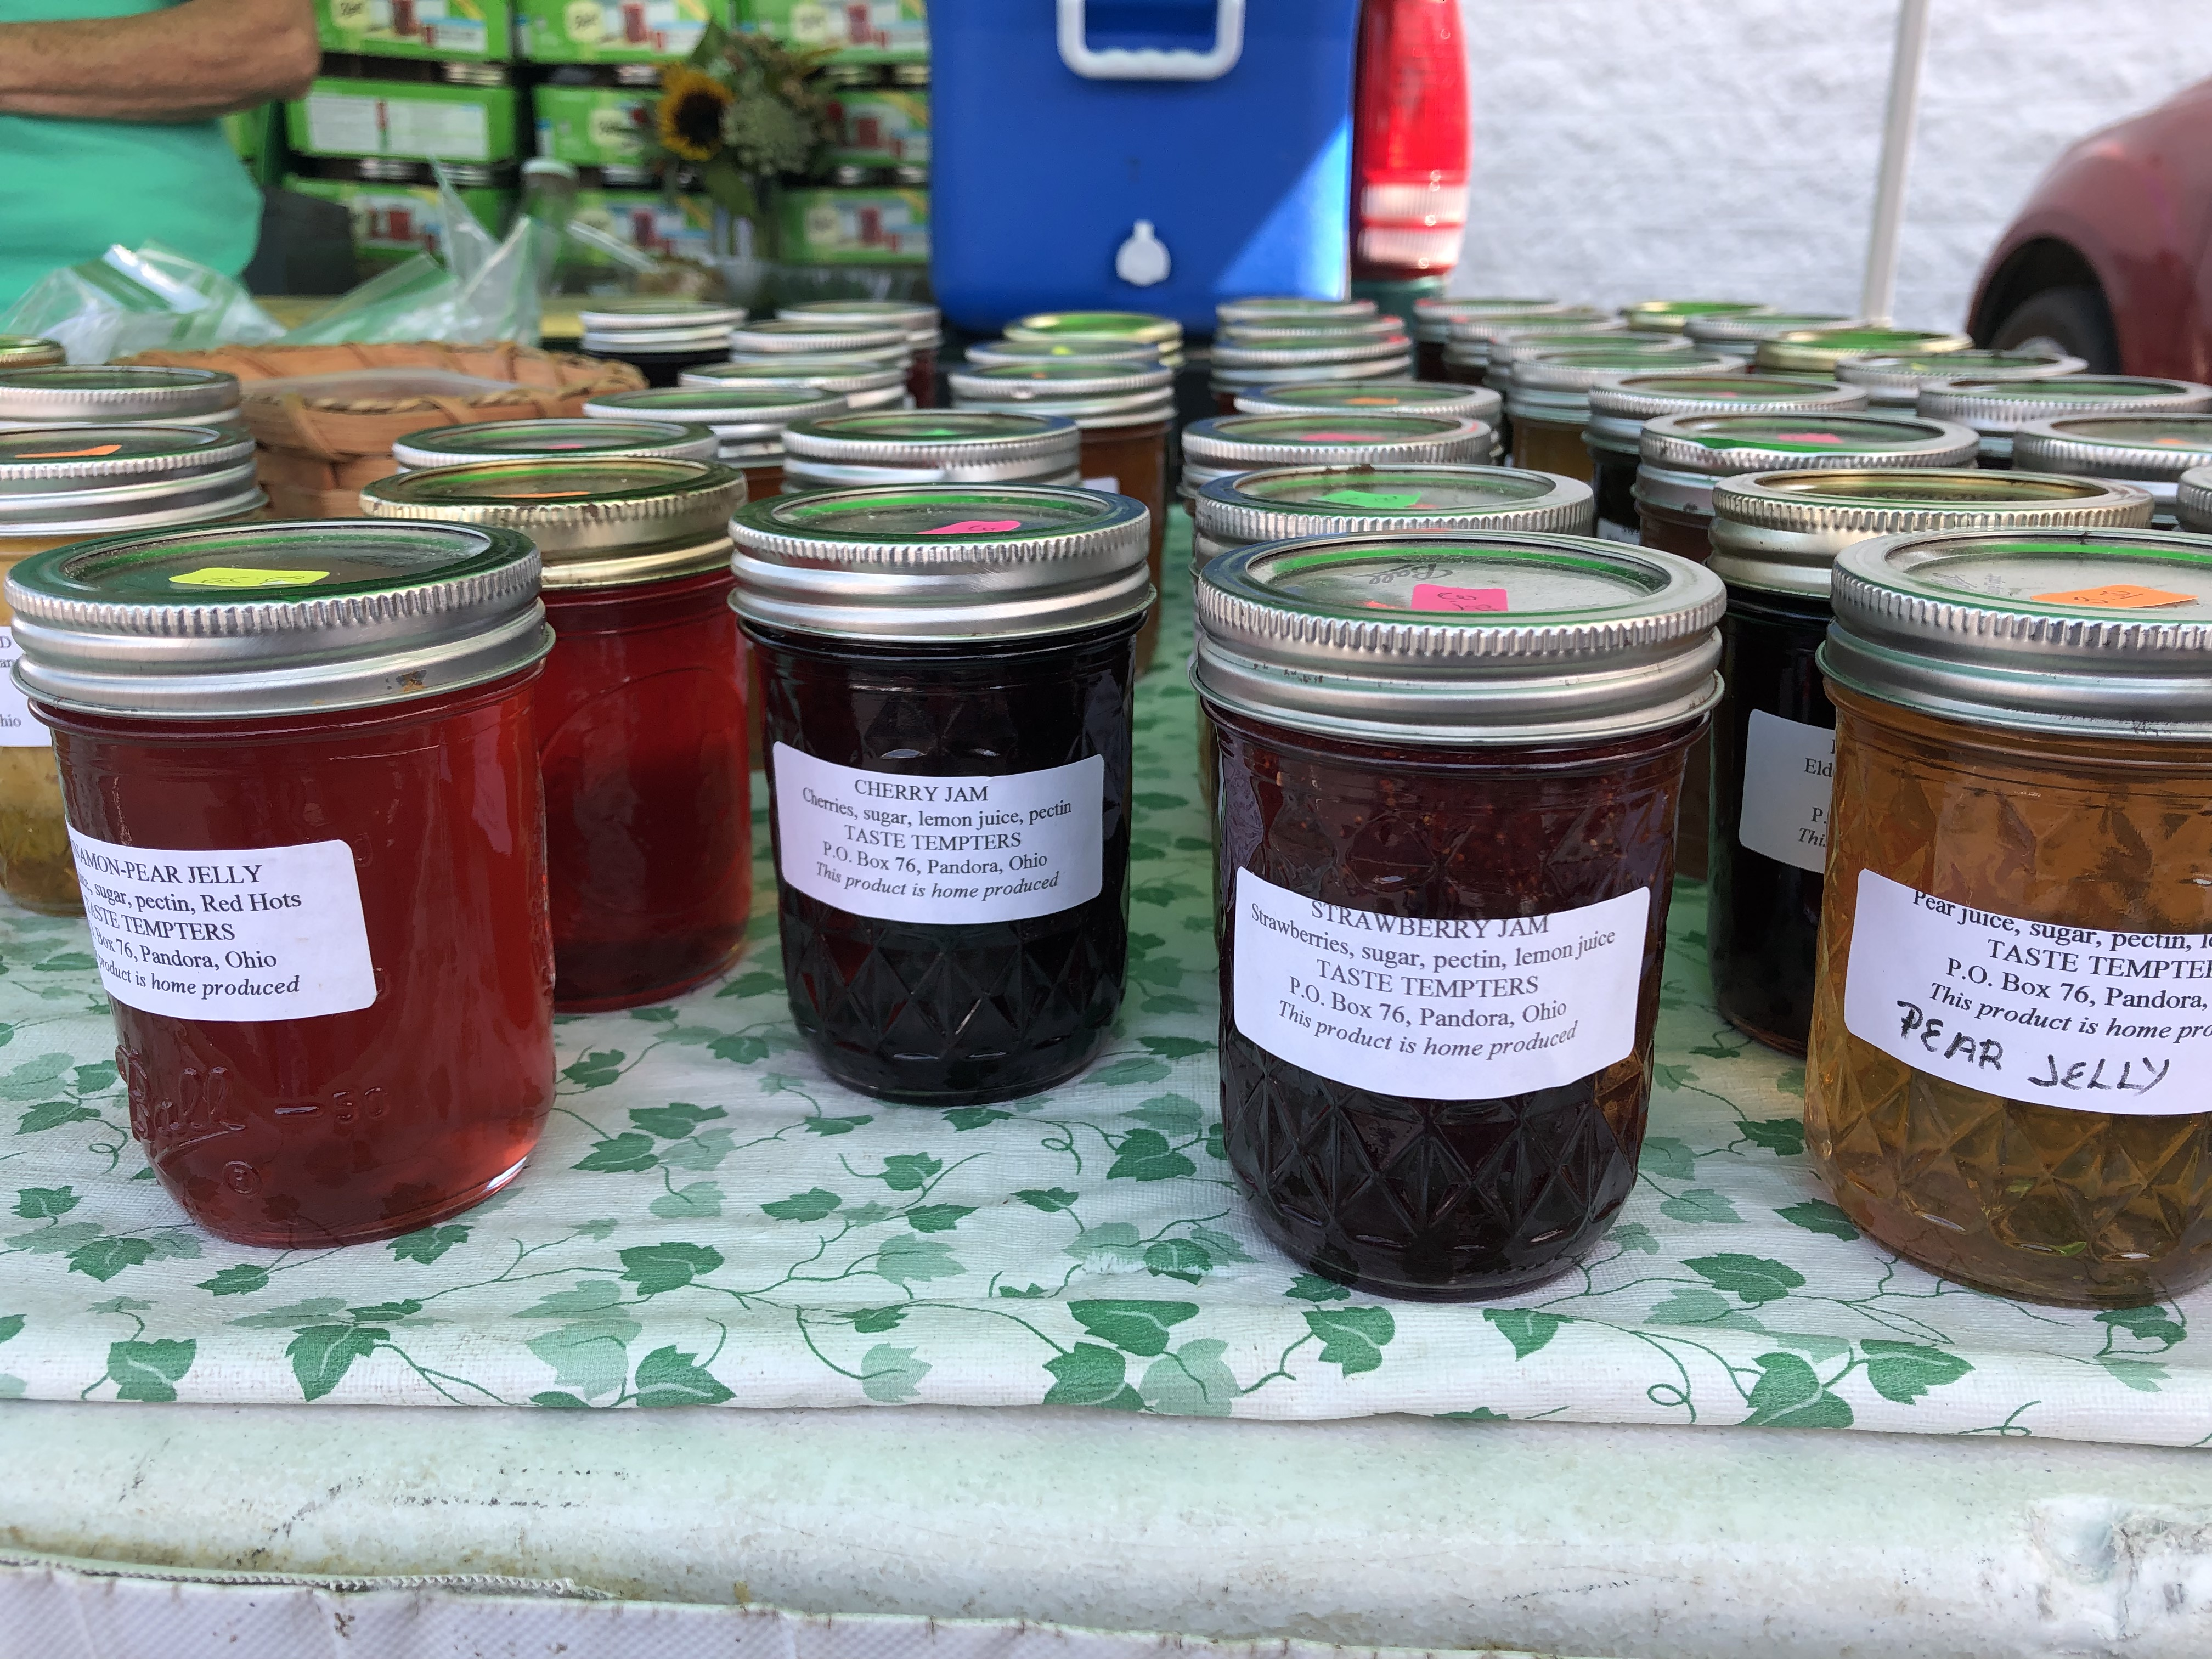 Taste Tempters offers jams, jellies and breads, plus gluten